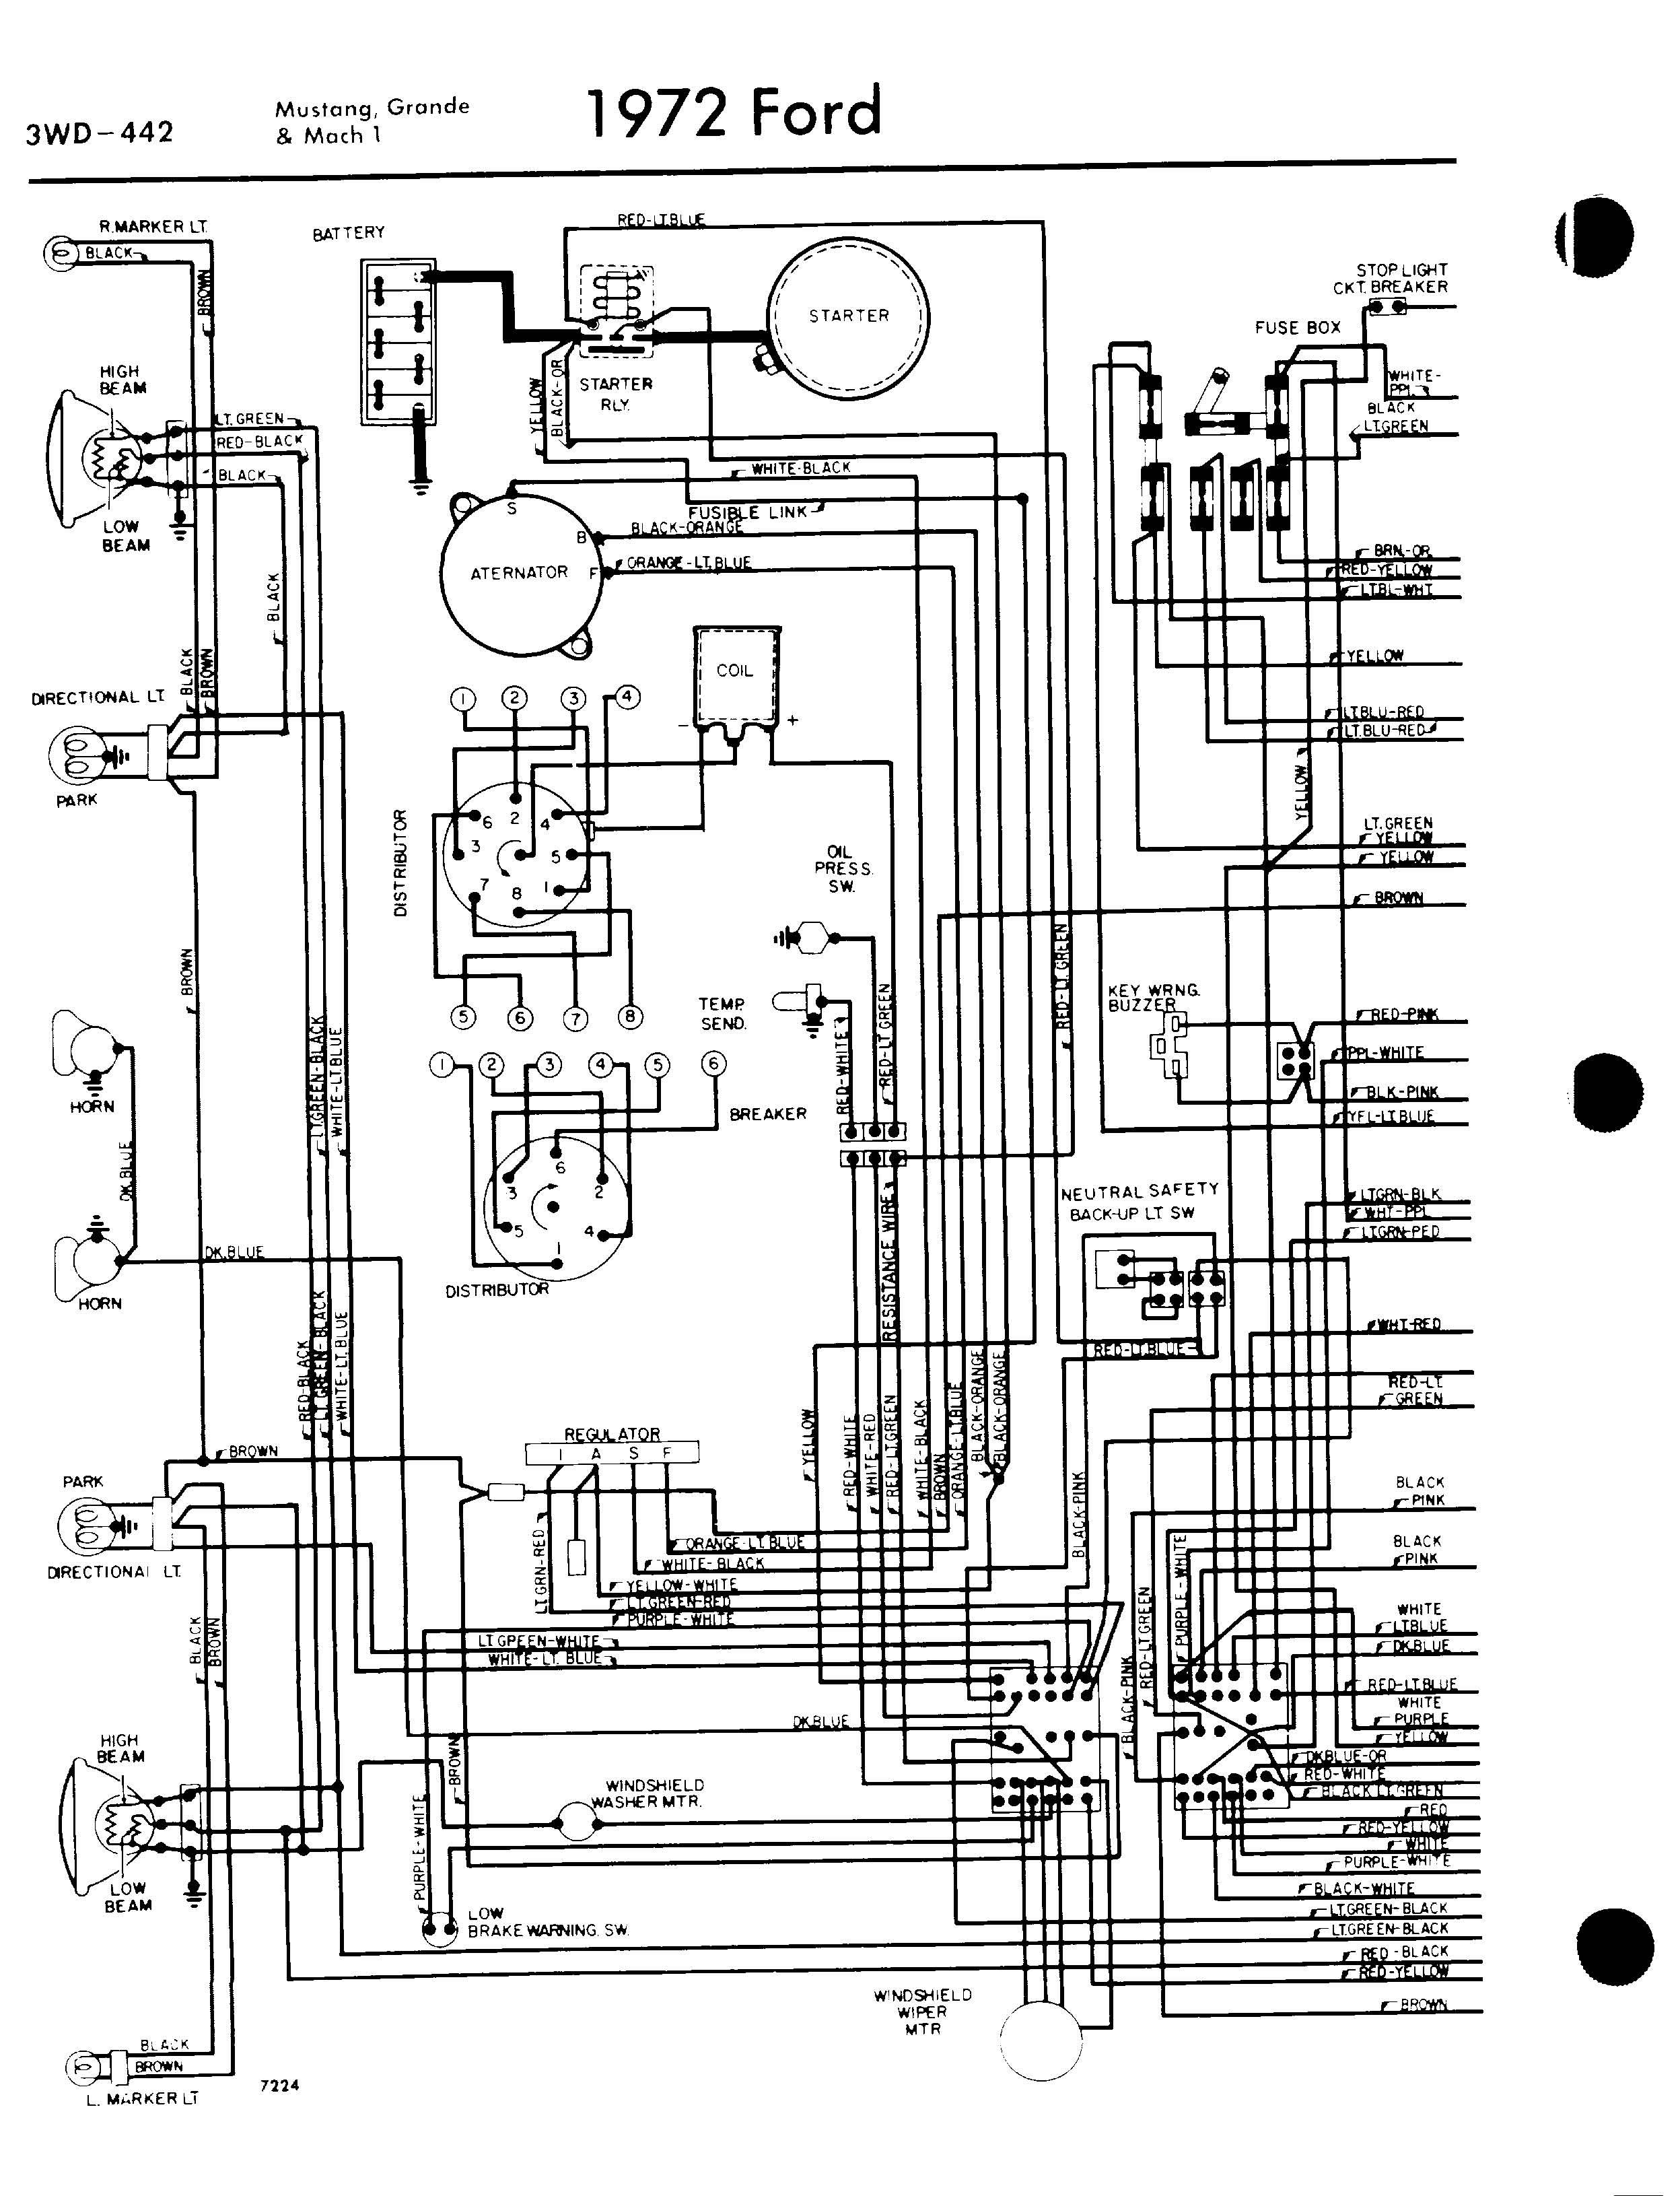 1971 ford mustang wiring diagram - wiring diagram page end-best-a -  end-best-a.granballodicomo.it  granballodicomo.it